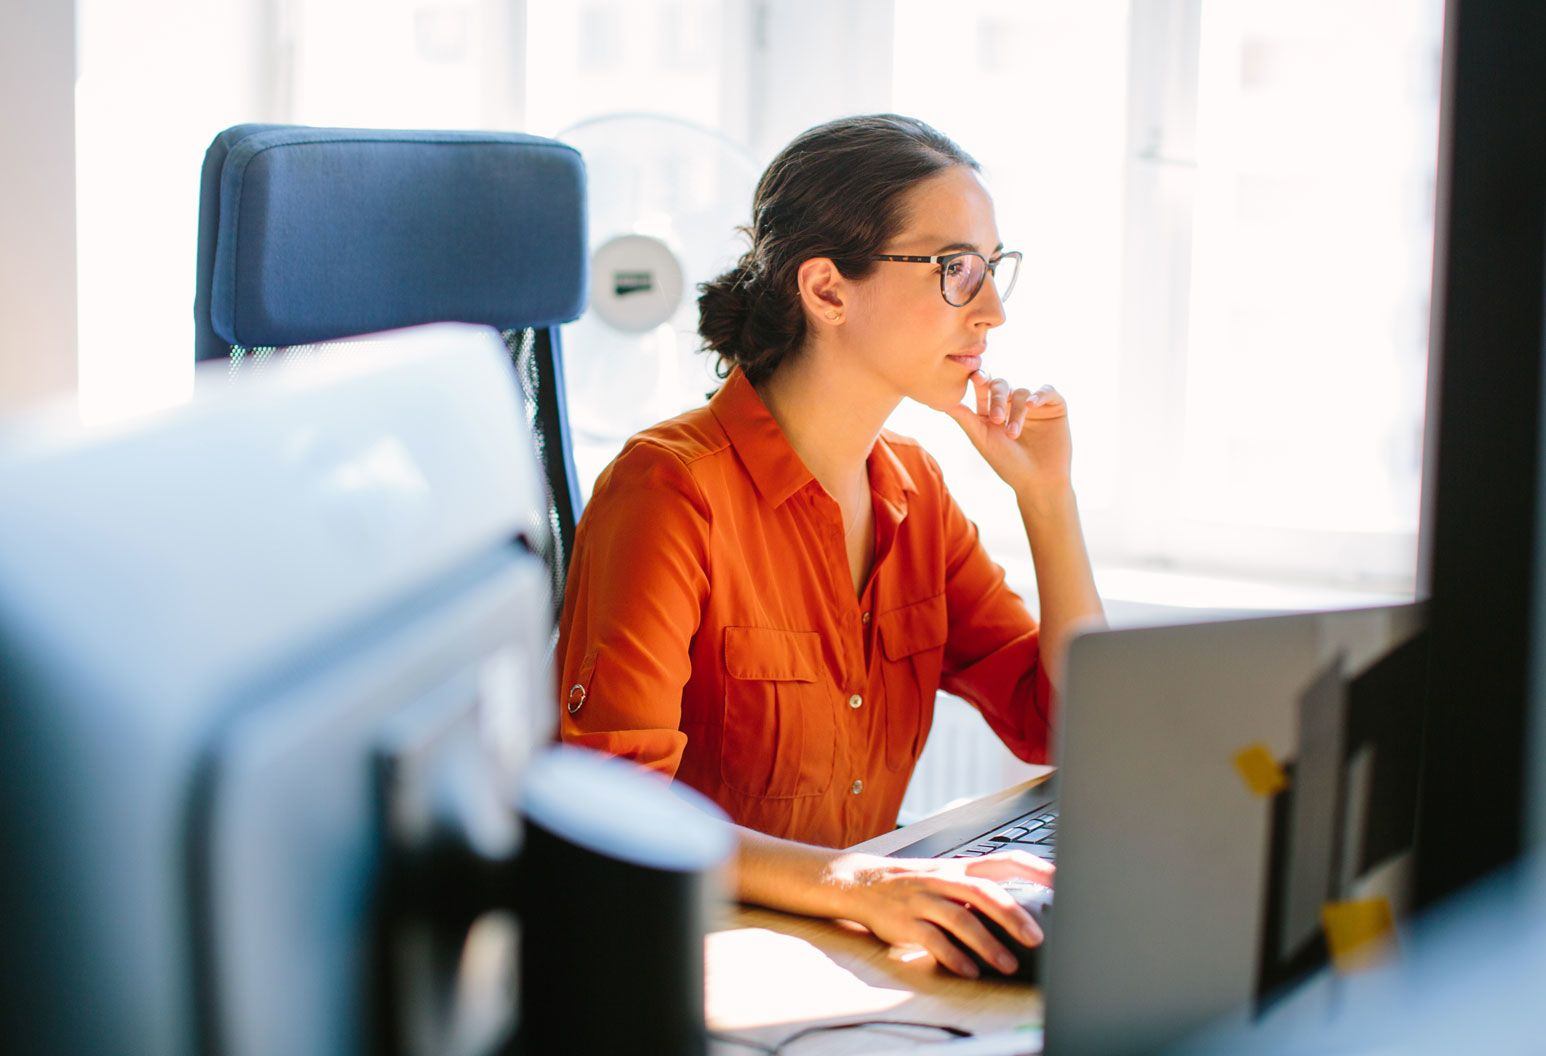 Woman sitting in front of computer thinking